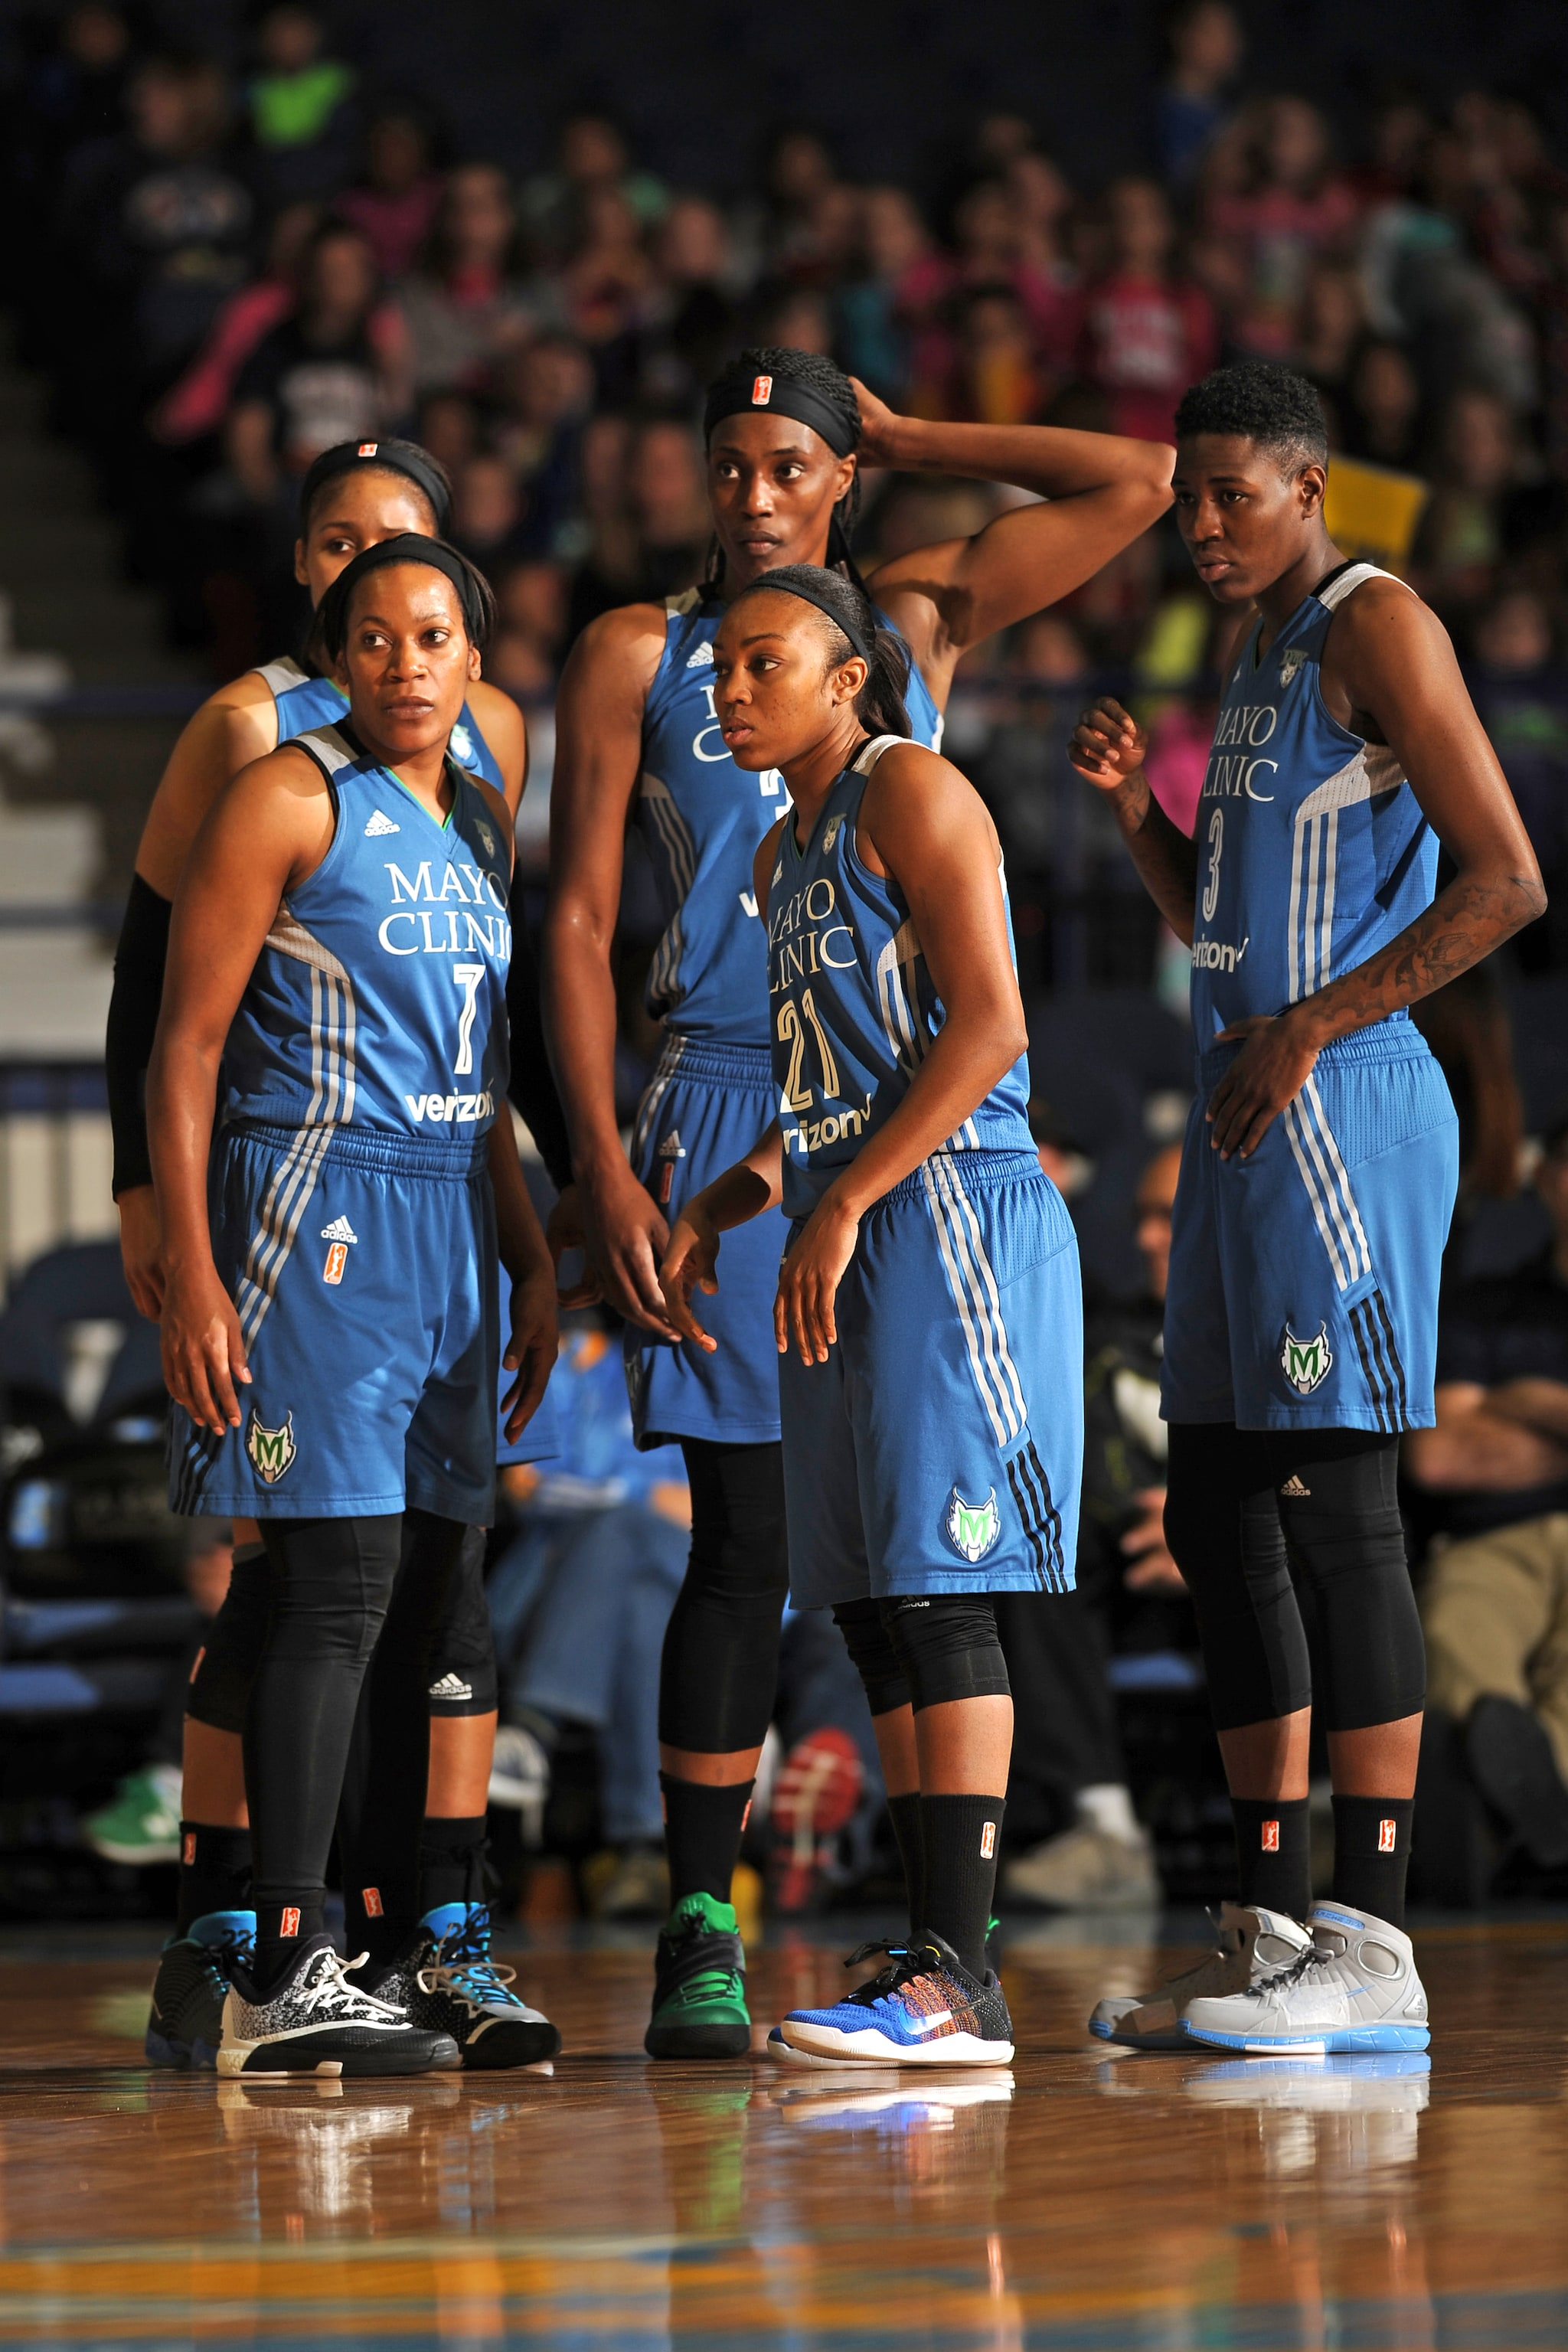 ROSEMONT, IL- MAY 18: The Minnesota Lynx looks on during the game against the Chicago Sky on May 18, 2016 at the Allstate Arena in Rosemont, Illinois. NOTE TO USER: User expressly acknowledges and agrees that, by downloading and/or using this photograph, user is consenting to the terms and conditions of the Getty Images License Agreement. Mandatory Copyright Notice: Copyright 2016 NBAE (Photo by Randy Belice/NBAE via Getty Images)